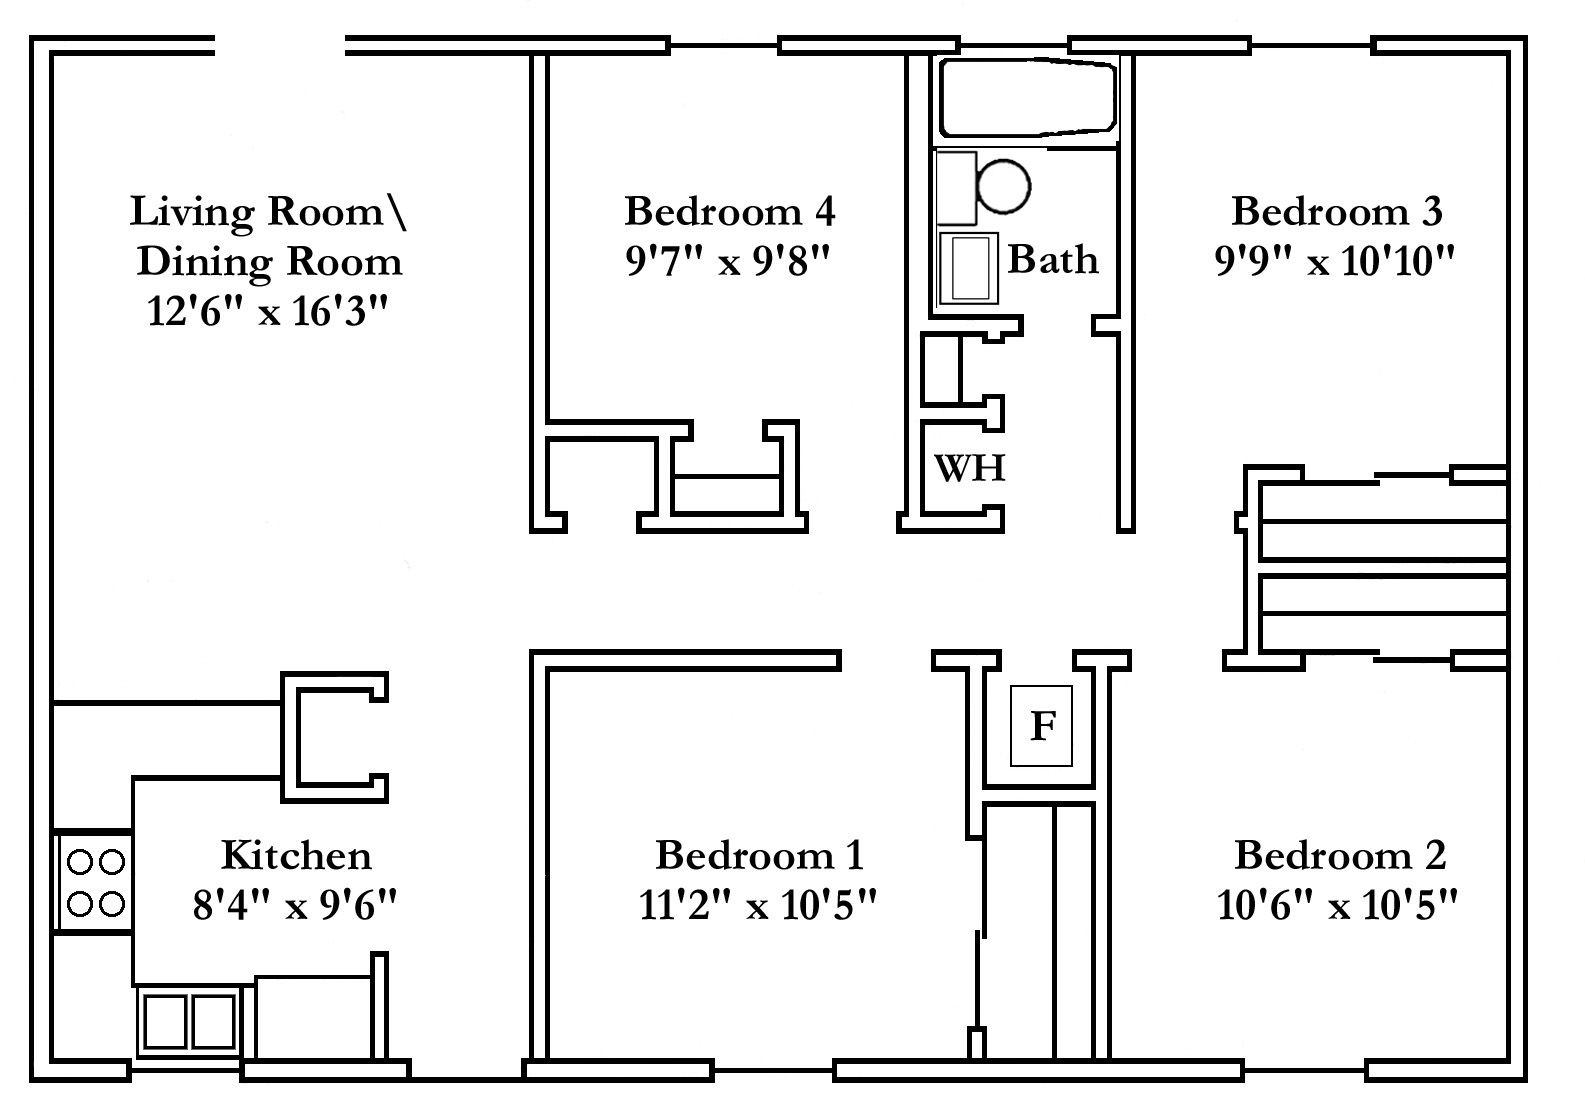 Small 4 bedroom house plans free typical floor plans for 4 bedroom cabin floor plans